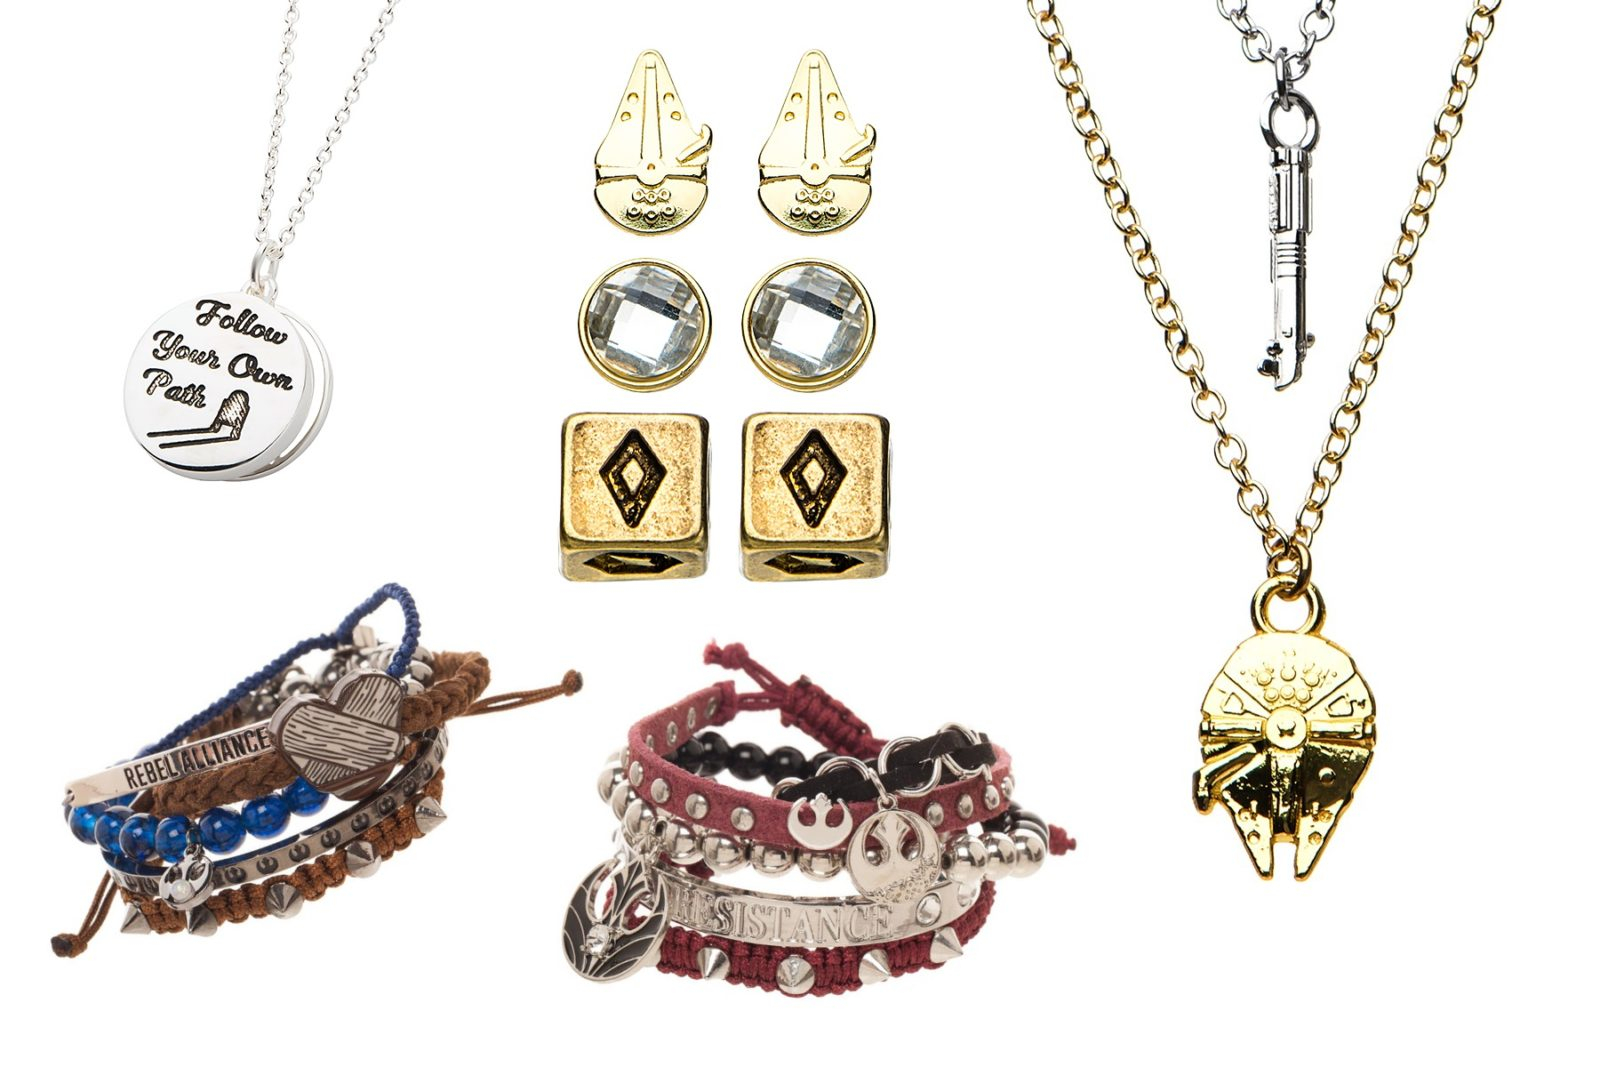 Star Wars Jewelry on Sale Now at Zulily